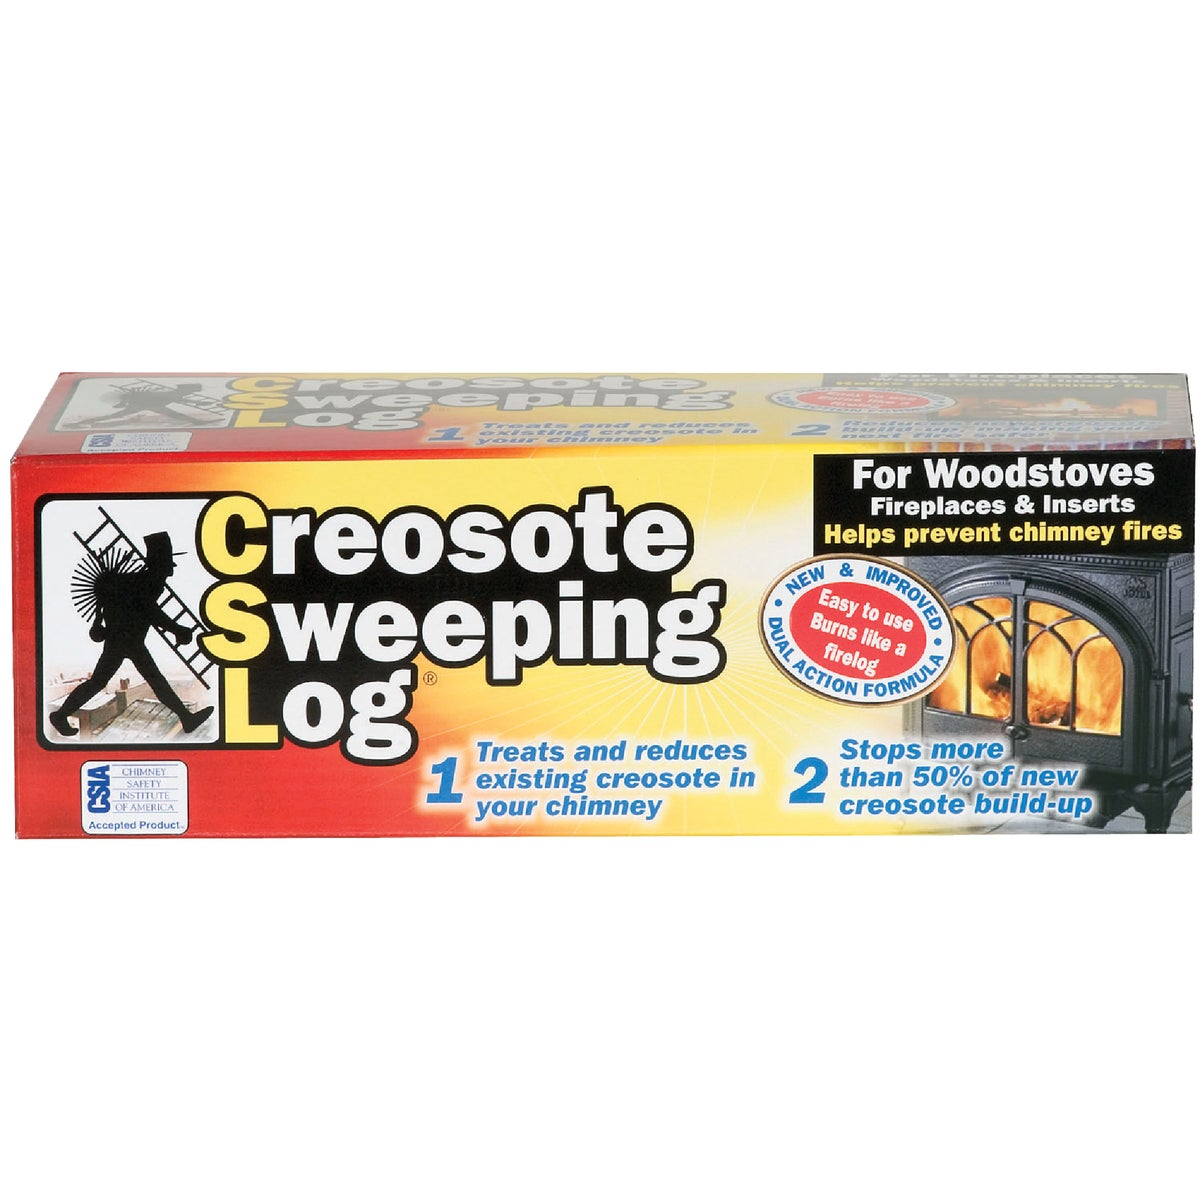 CREOSOTE SWEEPING LOG - SL824-12 by Joseph Enterprises